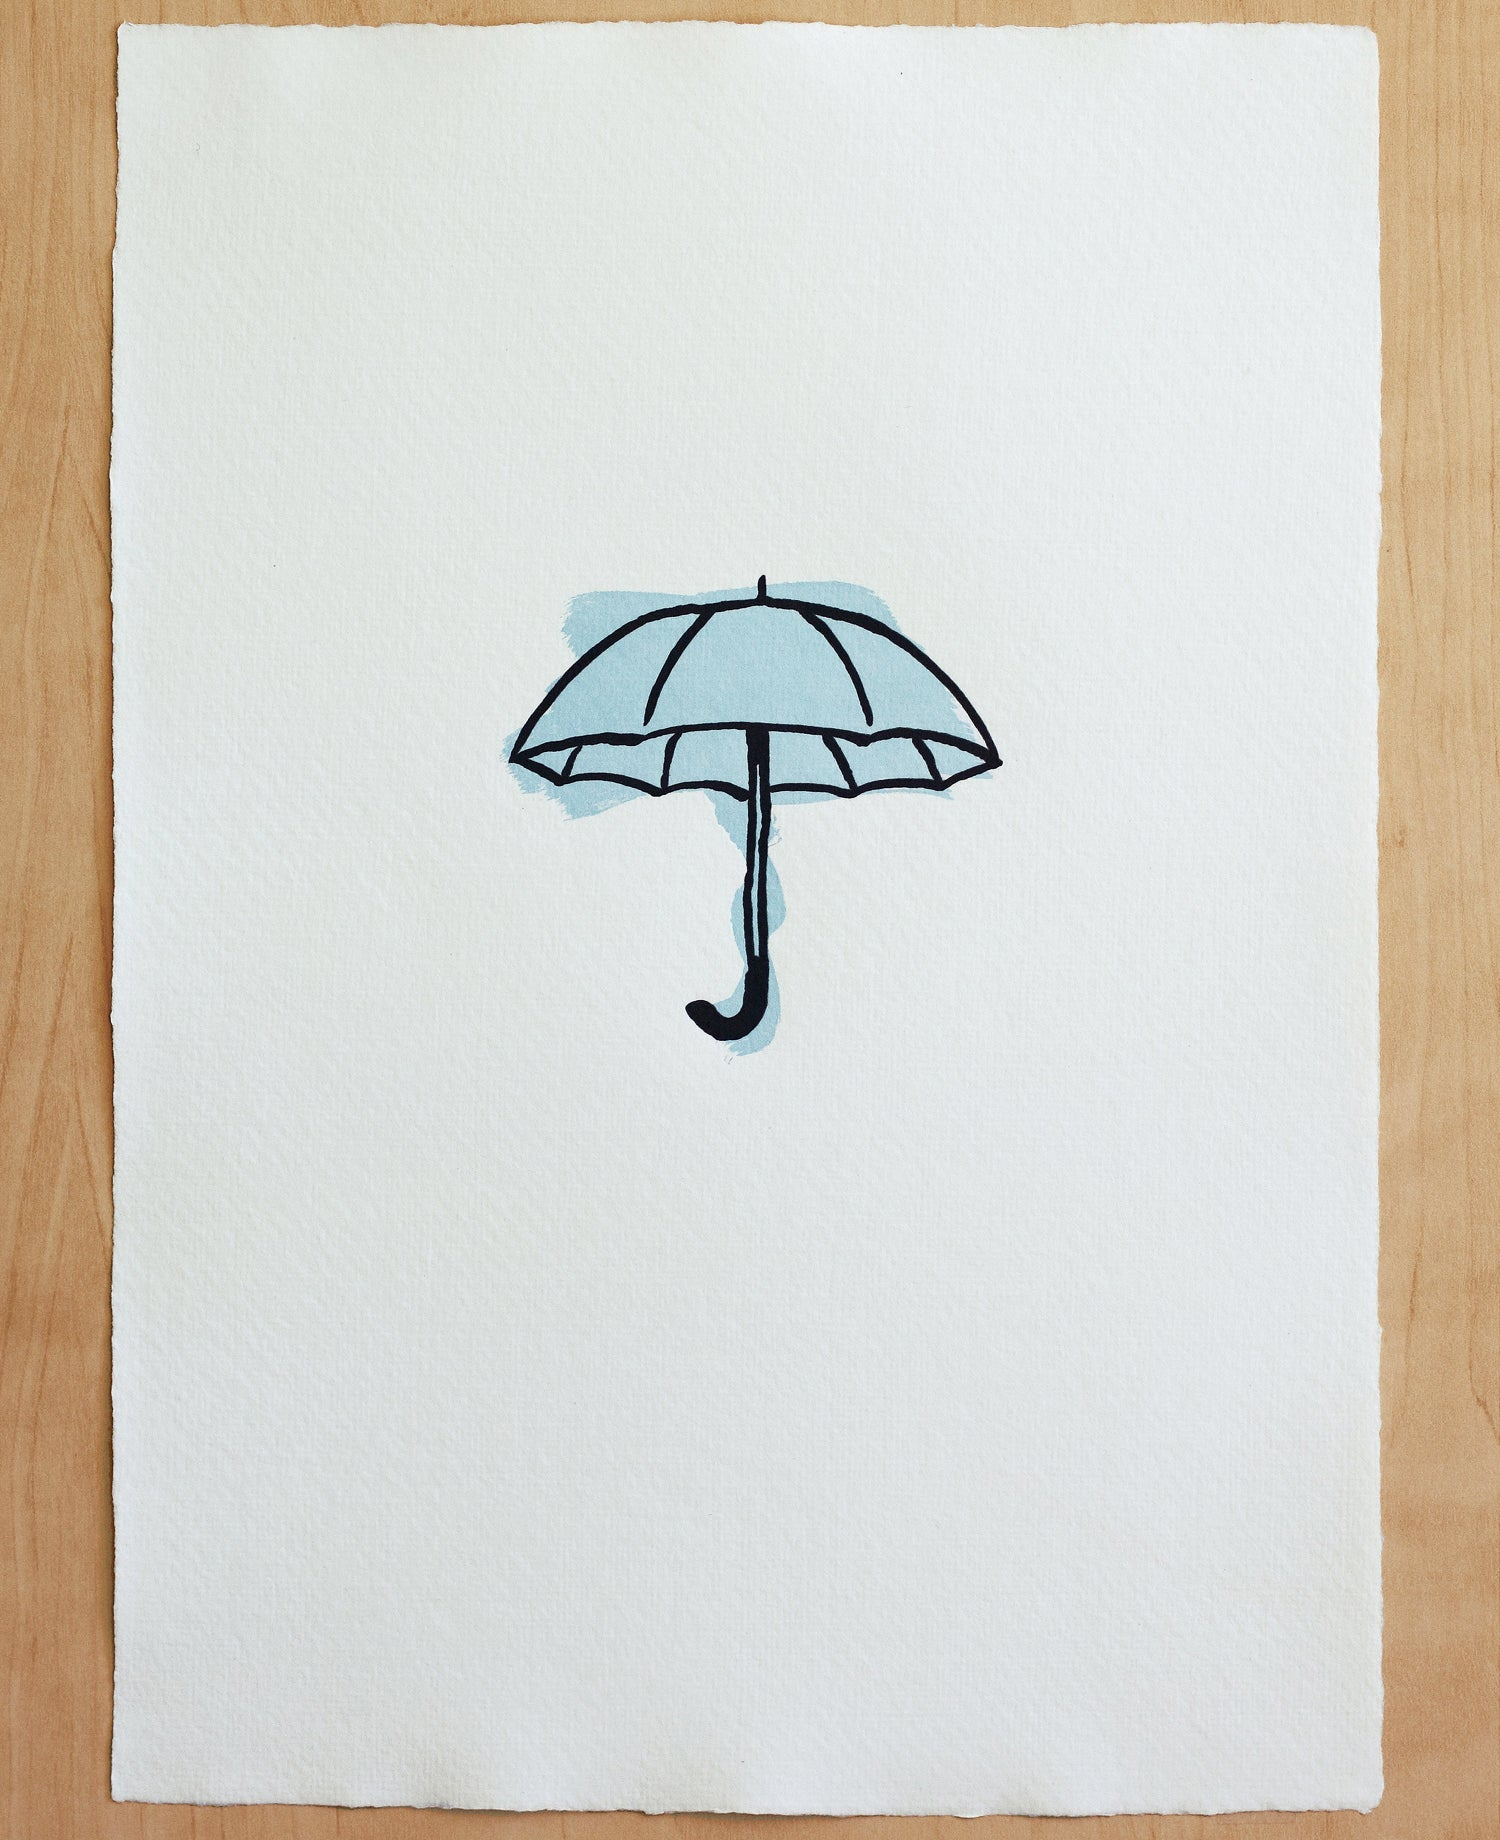 Image of UMBRELLA print